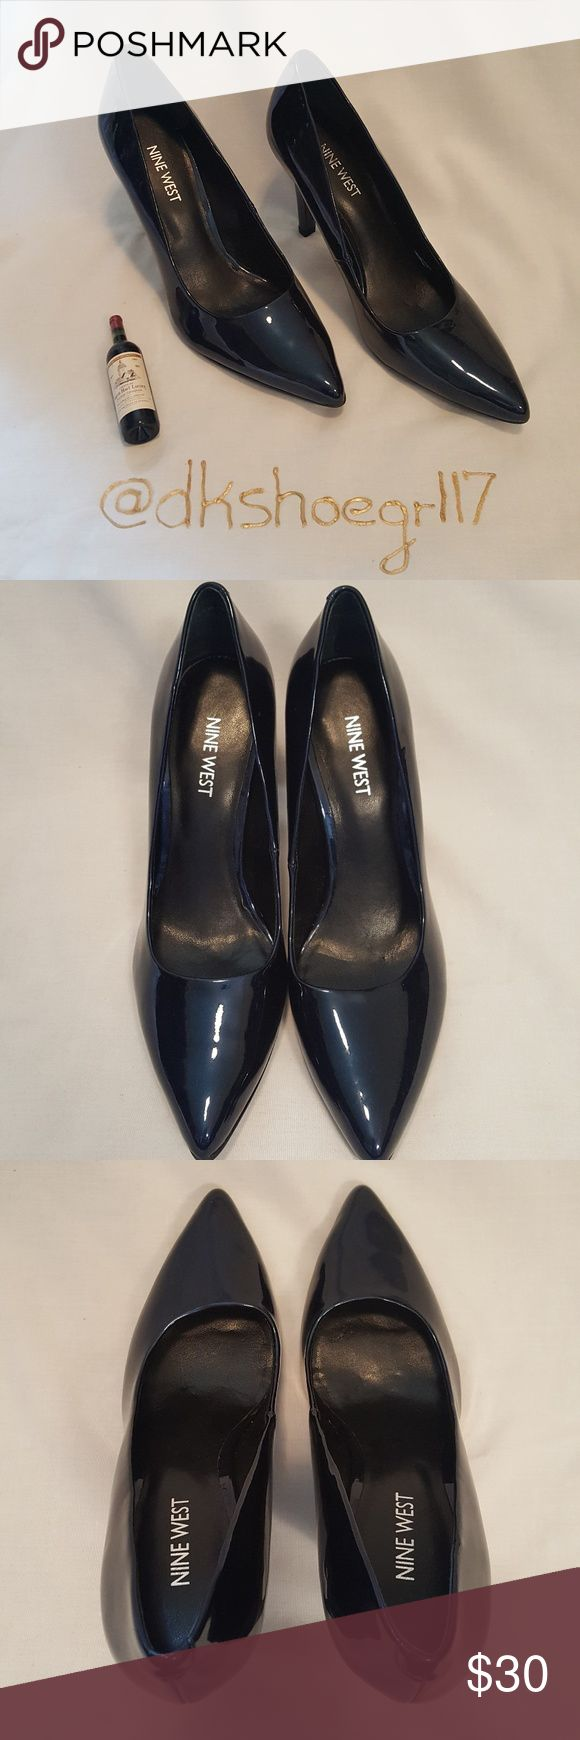 NWOT!!! Nine West Navy Patent Leather Pumps Navy pointy toe patent leather pumps by Nine West.  Classic pump & great for the office! Pair with light colored dress pants & a dark shirt or with any color knee length dress or skirt to rock every meeting in style!!! 4 inch heel height, never been worn!!! Also available in gold, ask about a bundle! Nine West Shoes Heels